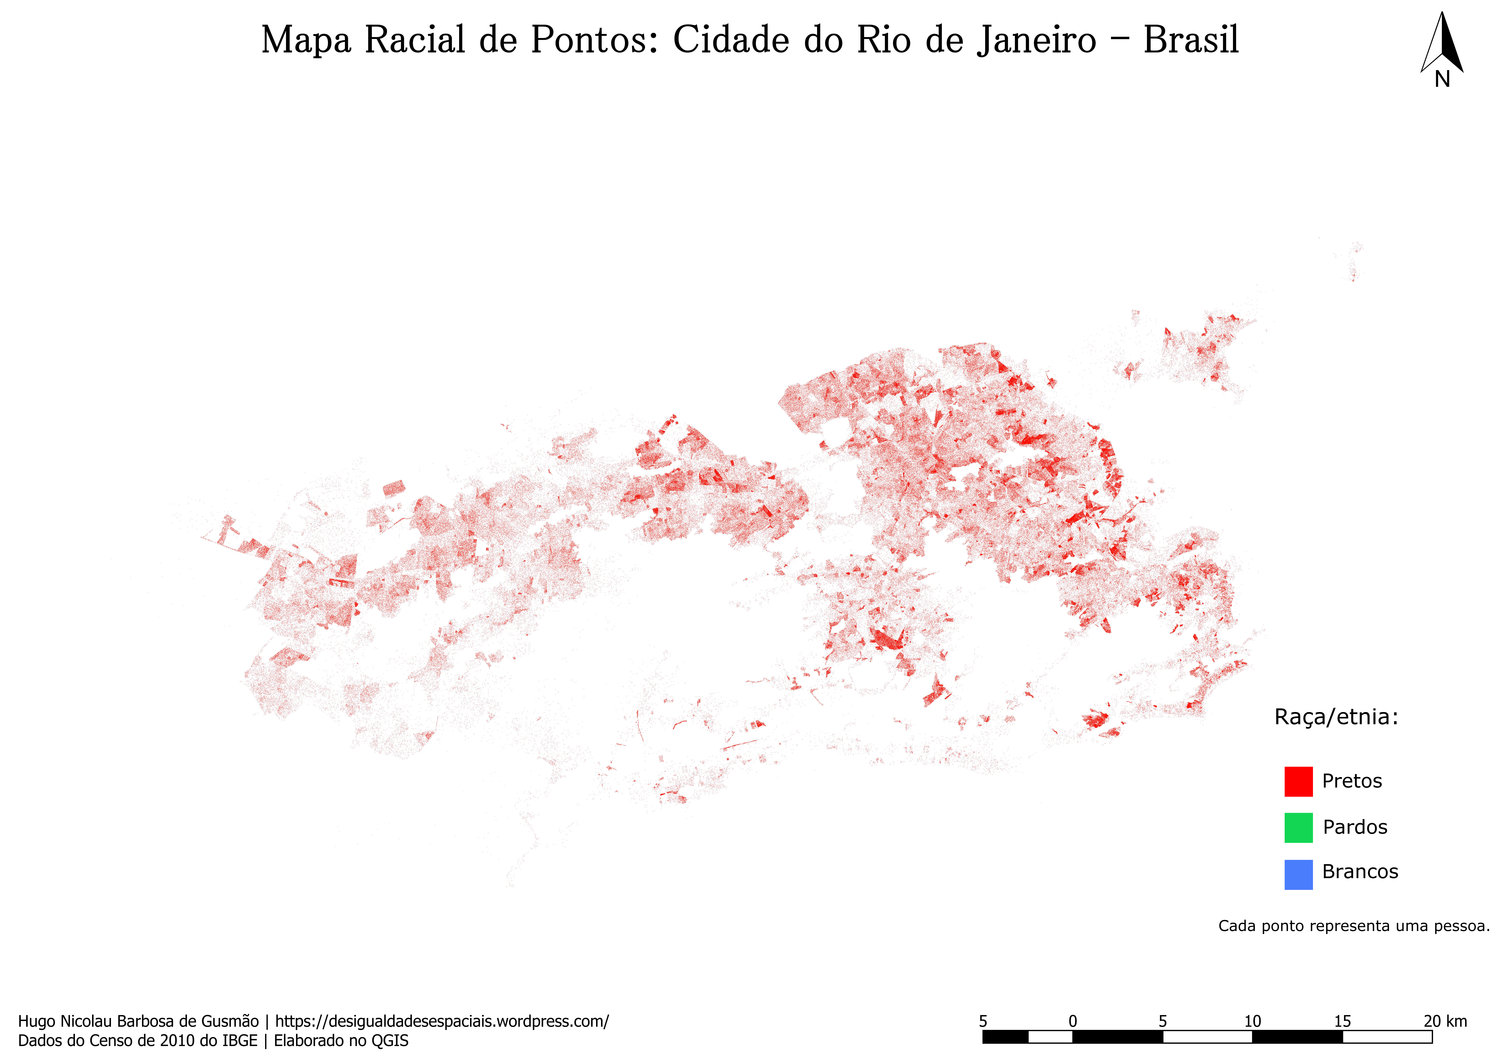 Map shows distribution of blacks in the city of Rio de Janeiro